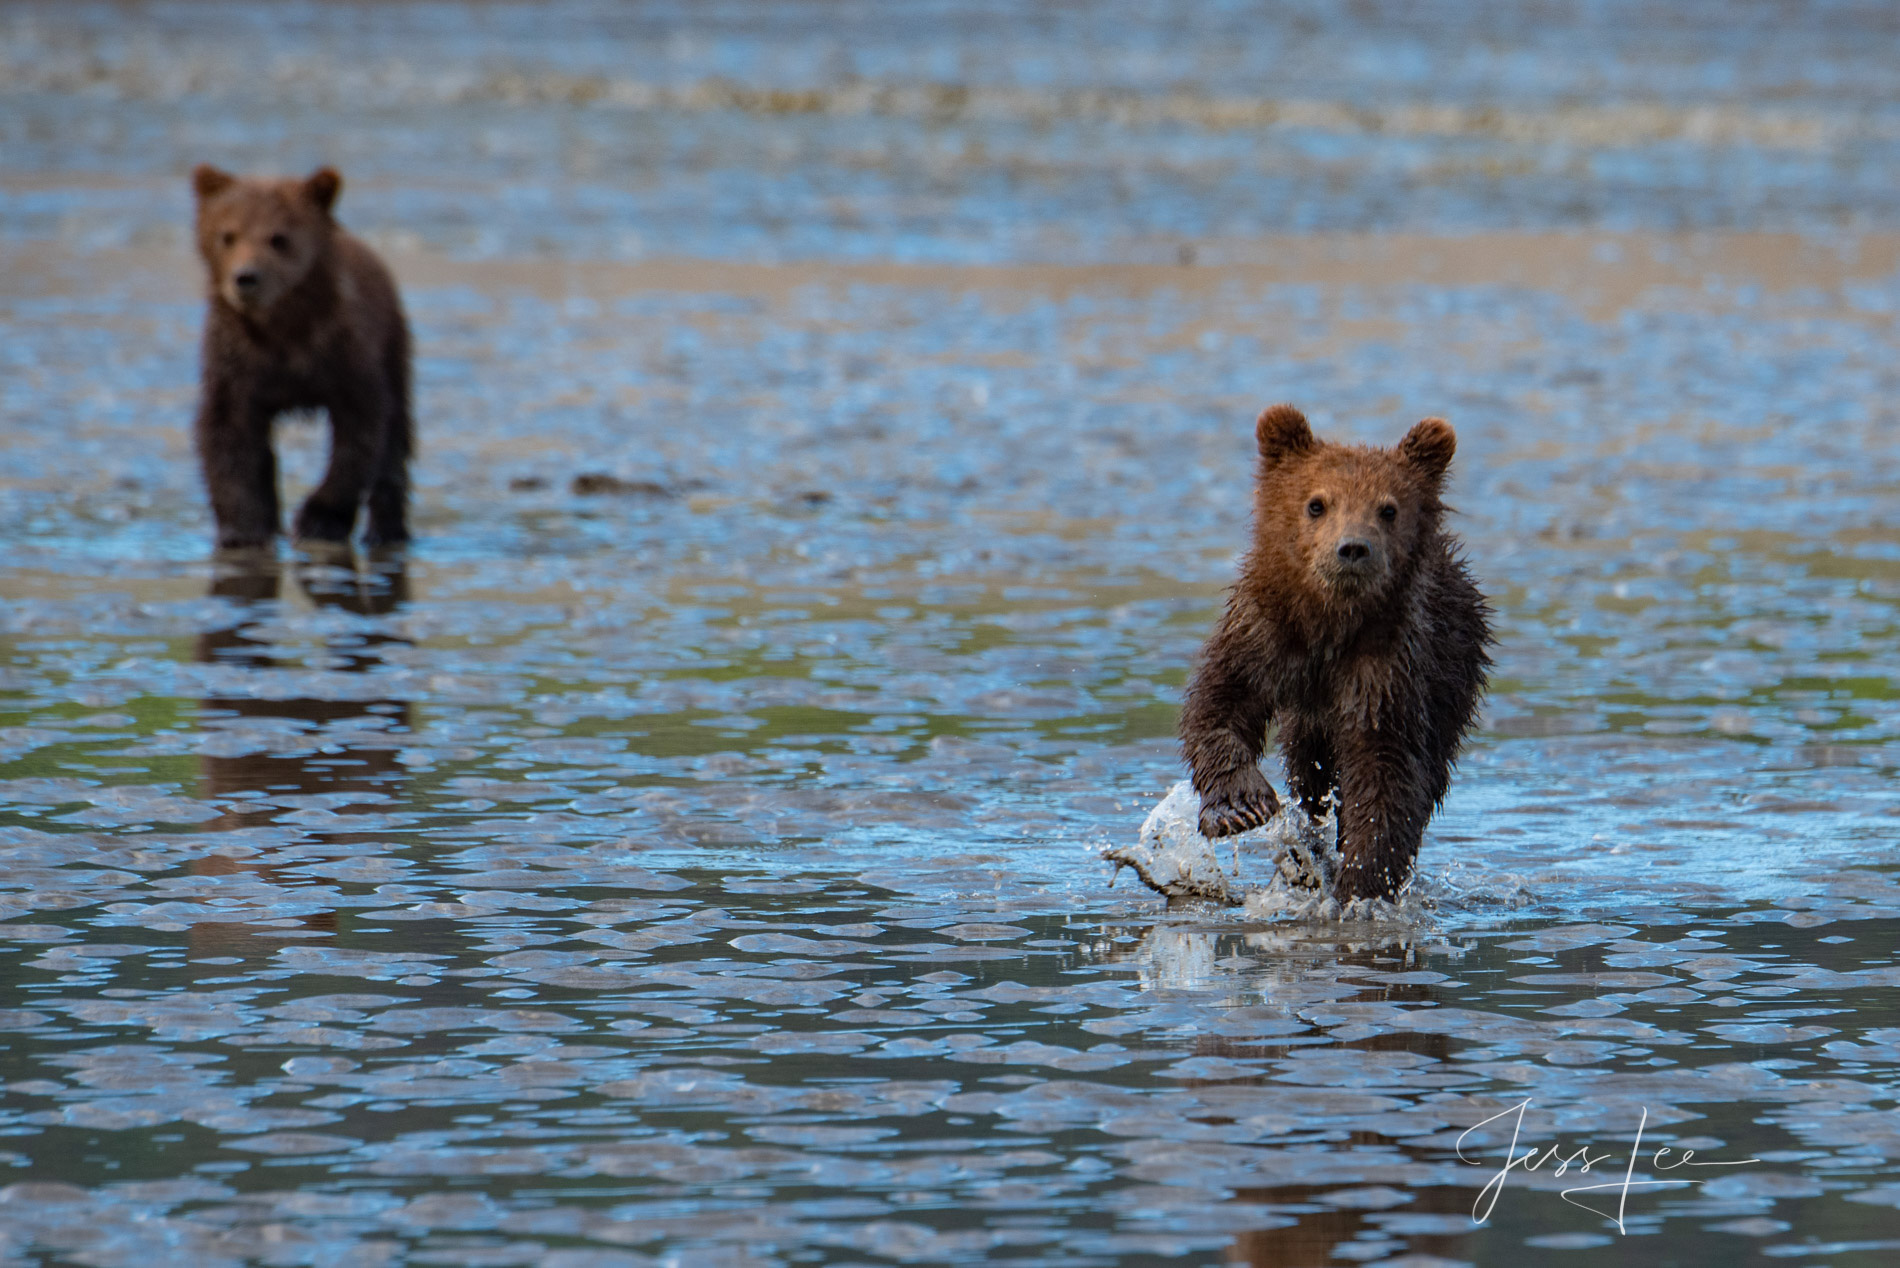 Grizzly Bear Cub play charging. A fine art limited edition of 300 prints